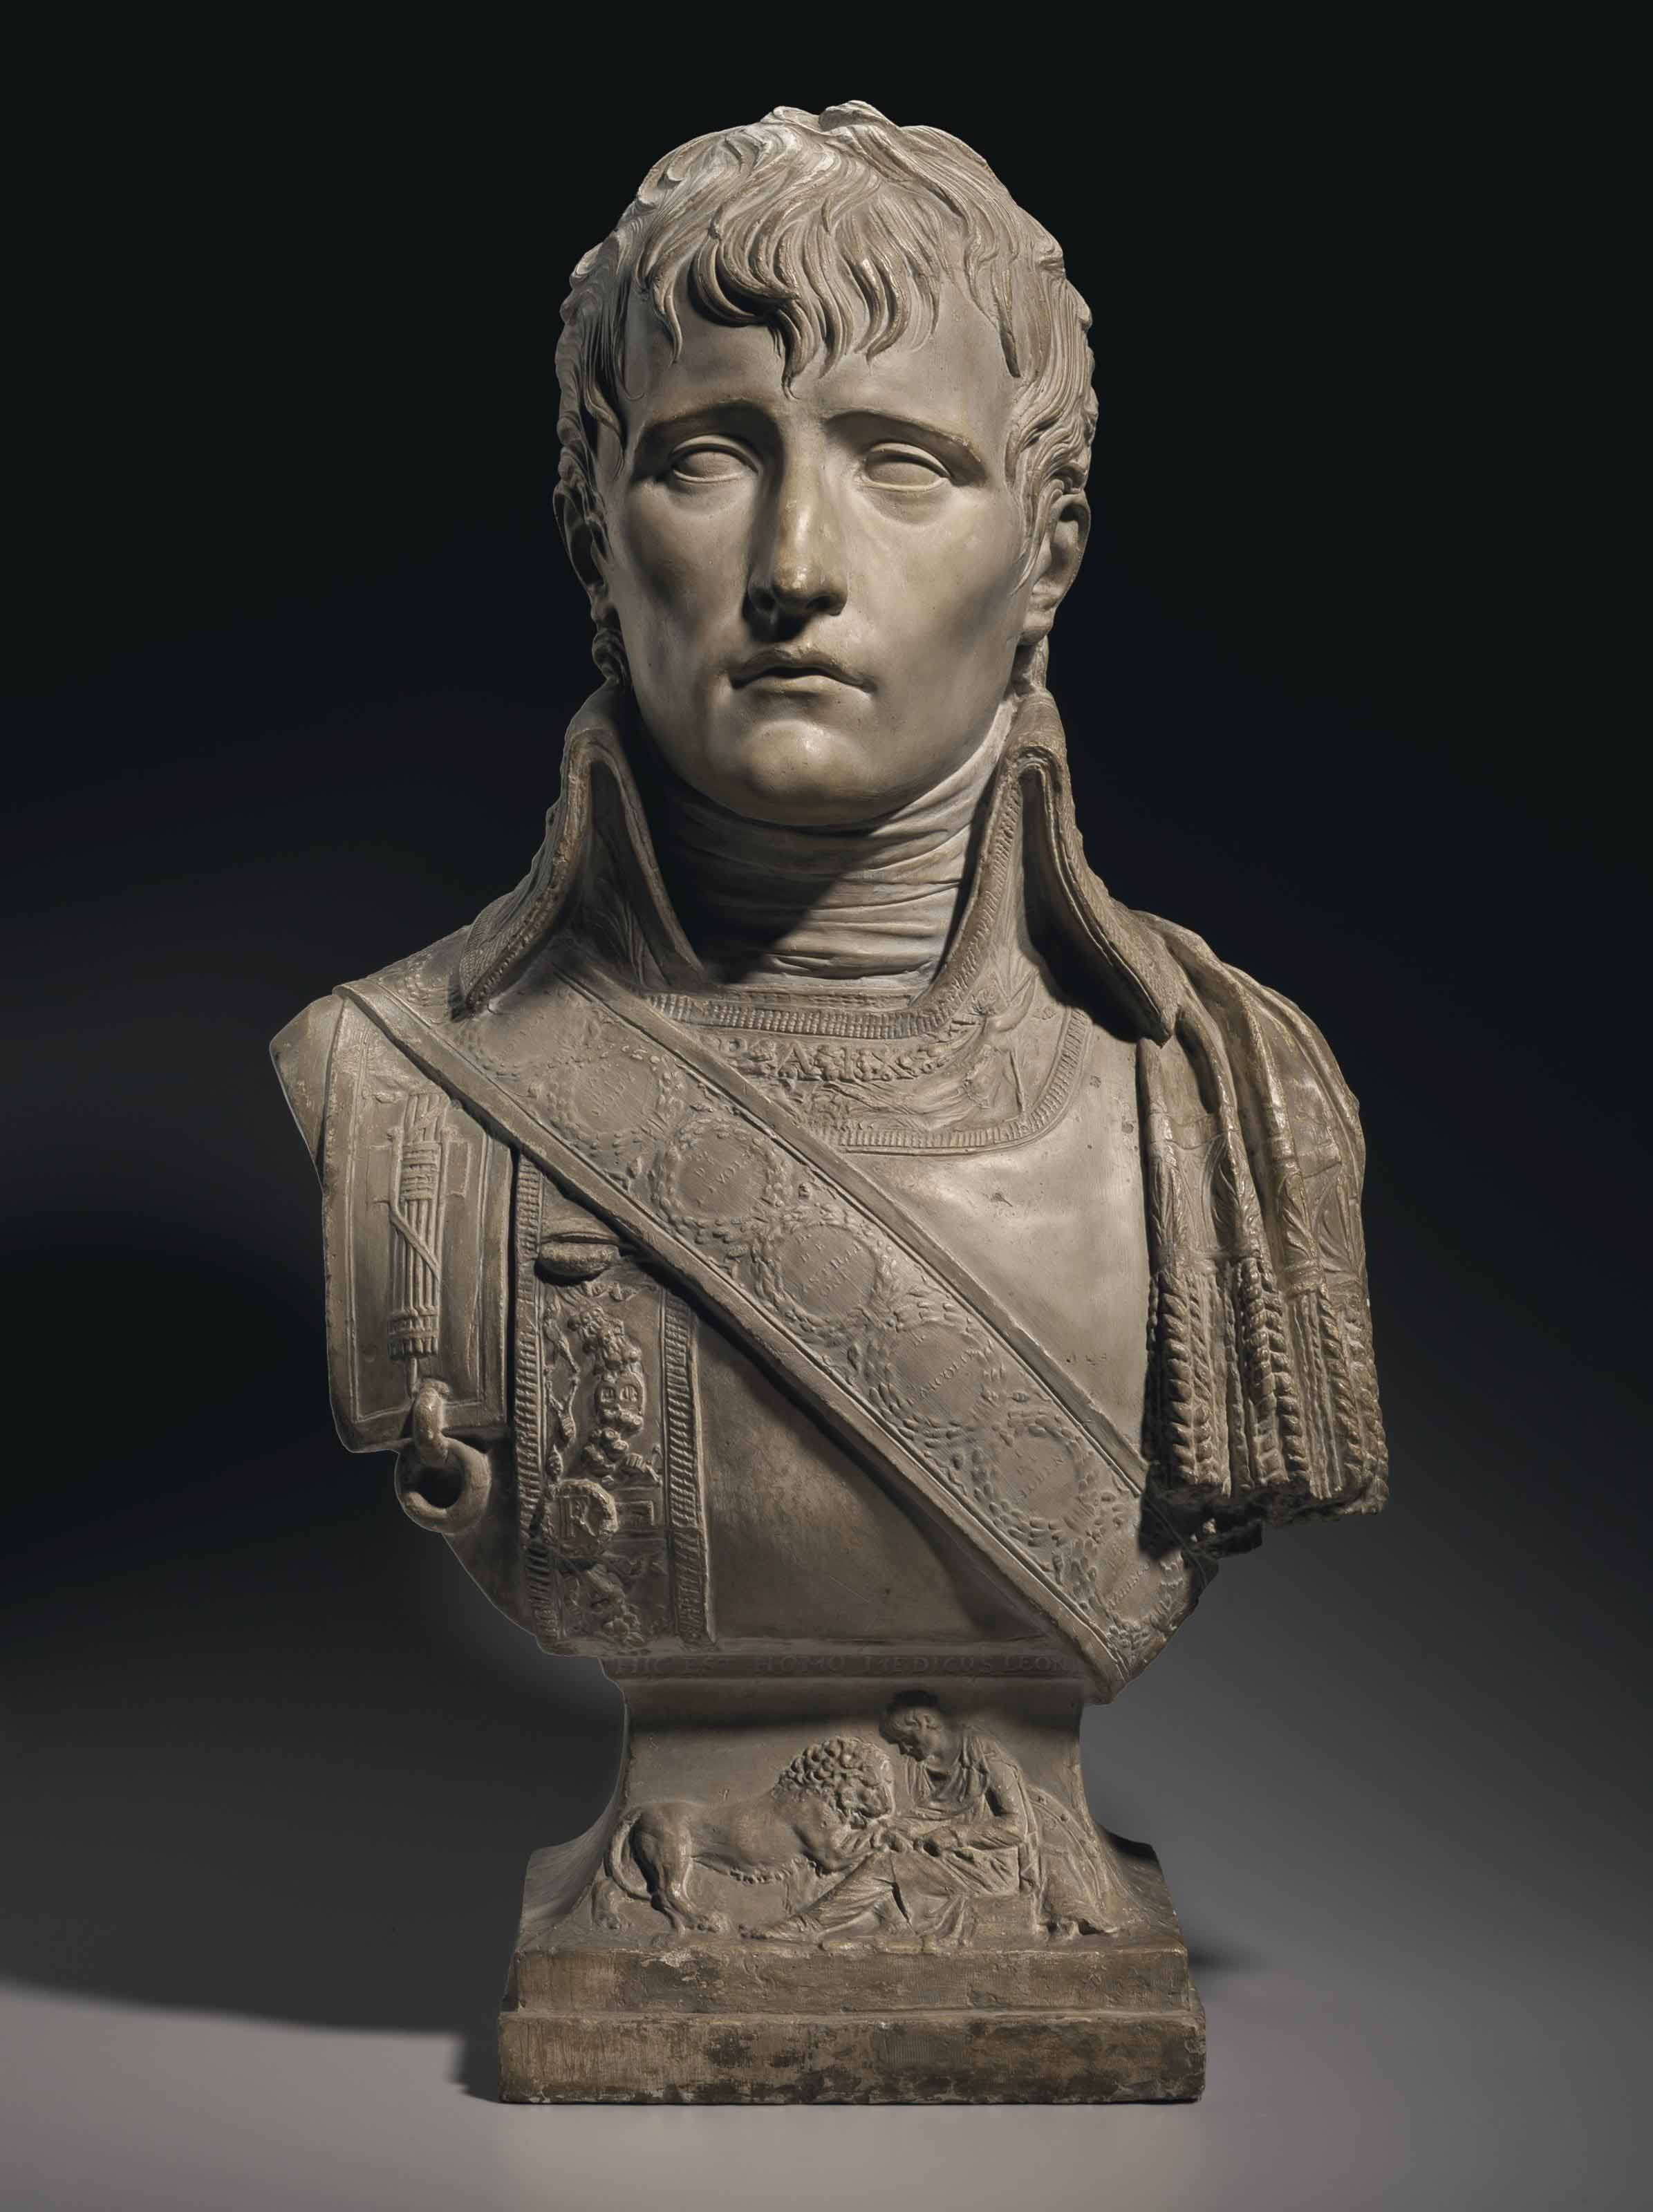 A TINTED PLASTER BUST OF NAPOLEON BONAPARTE AS FIRST CONSUL